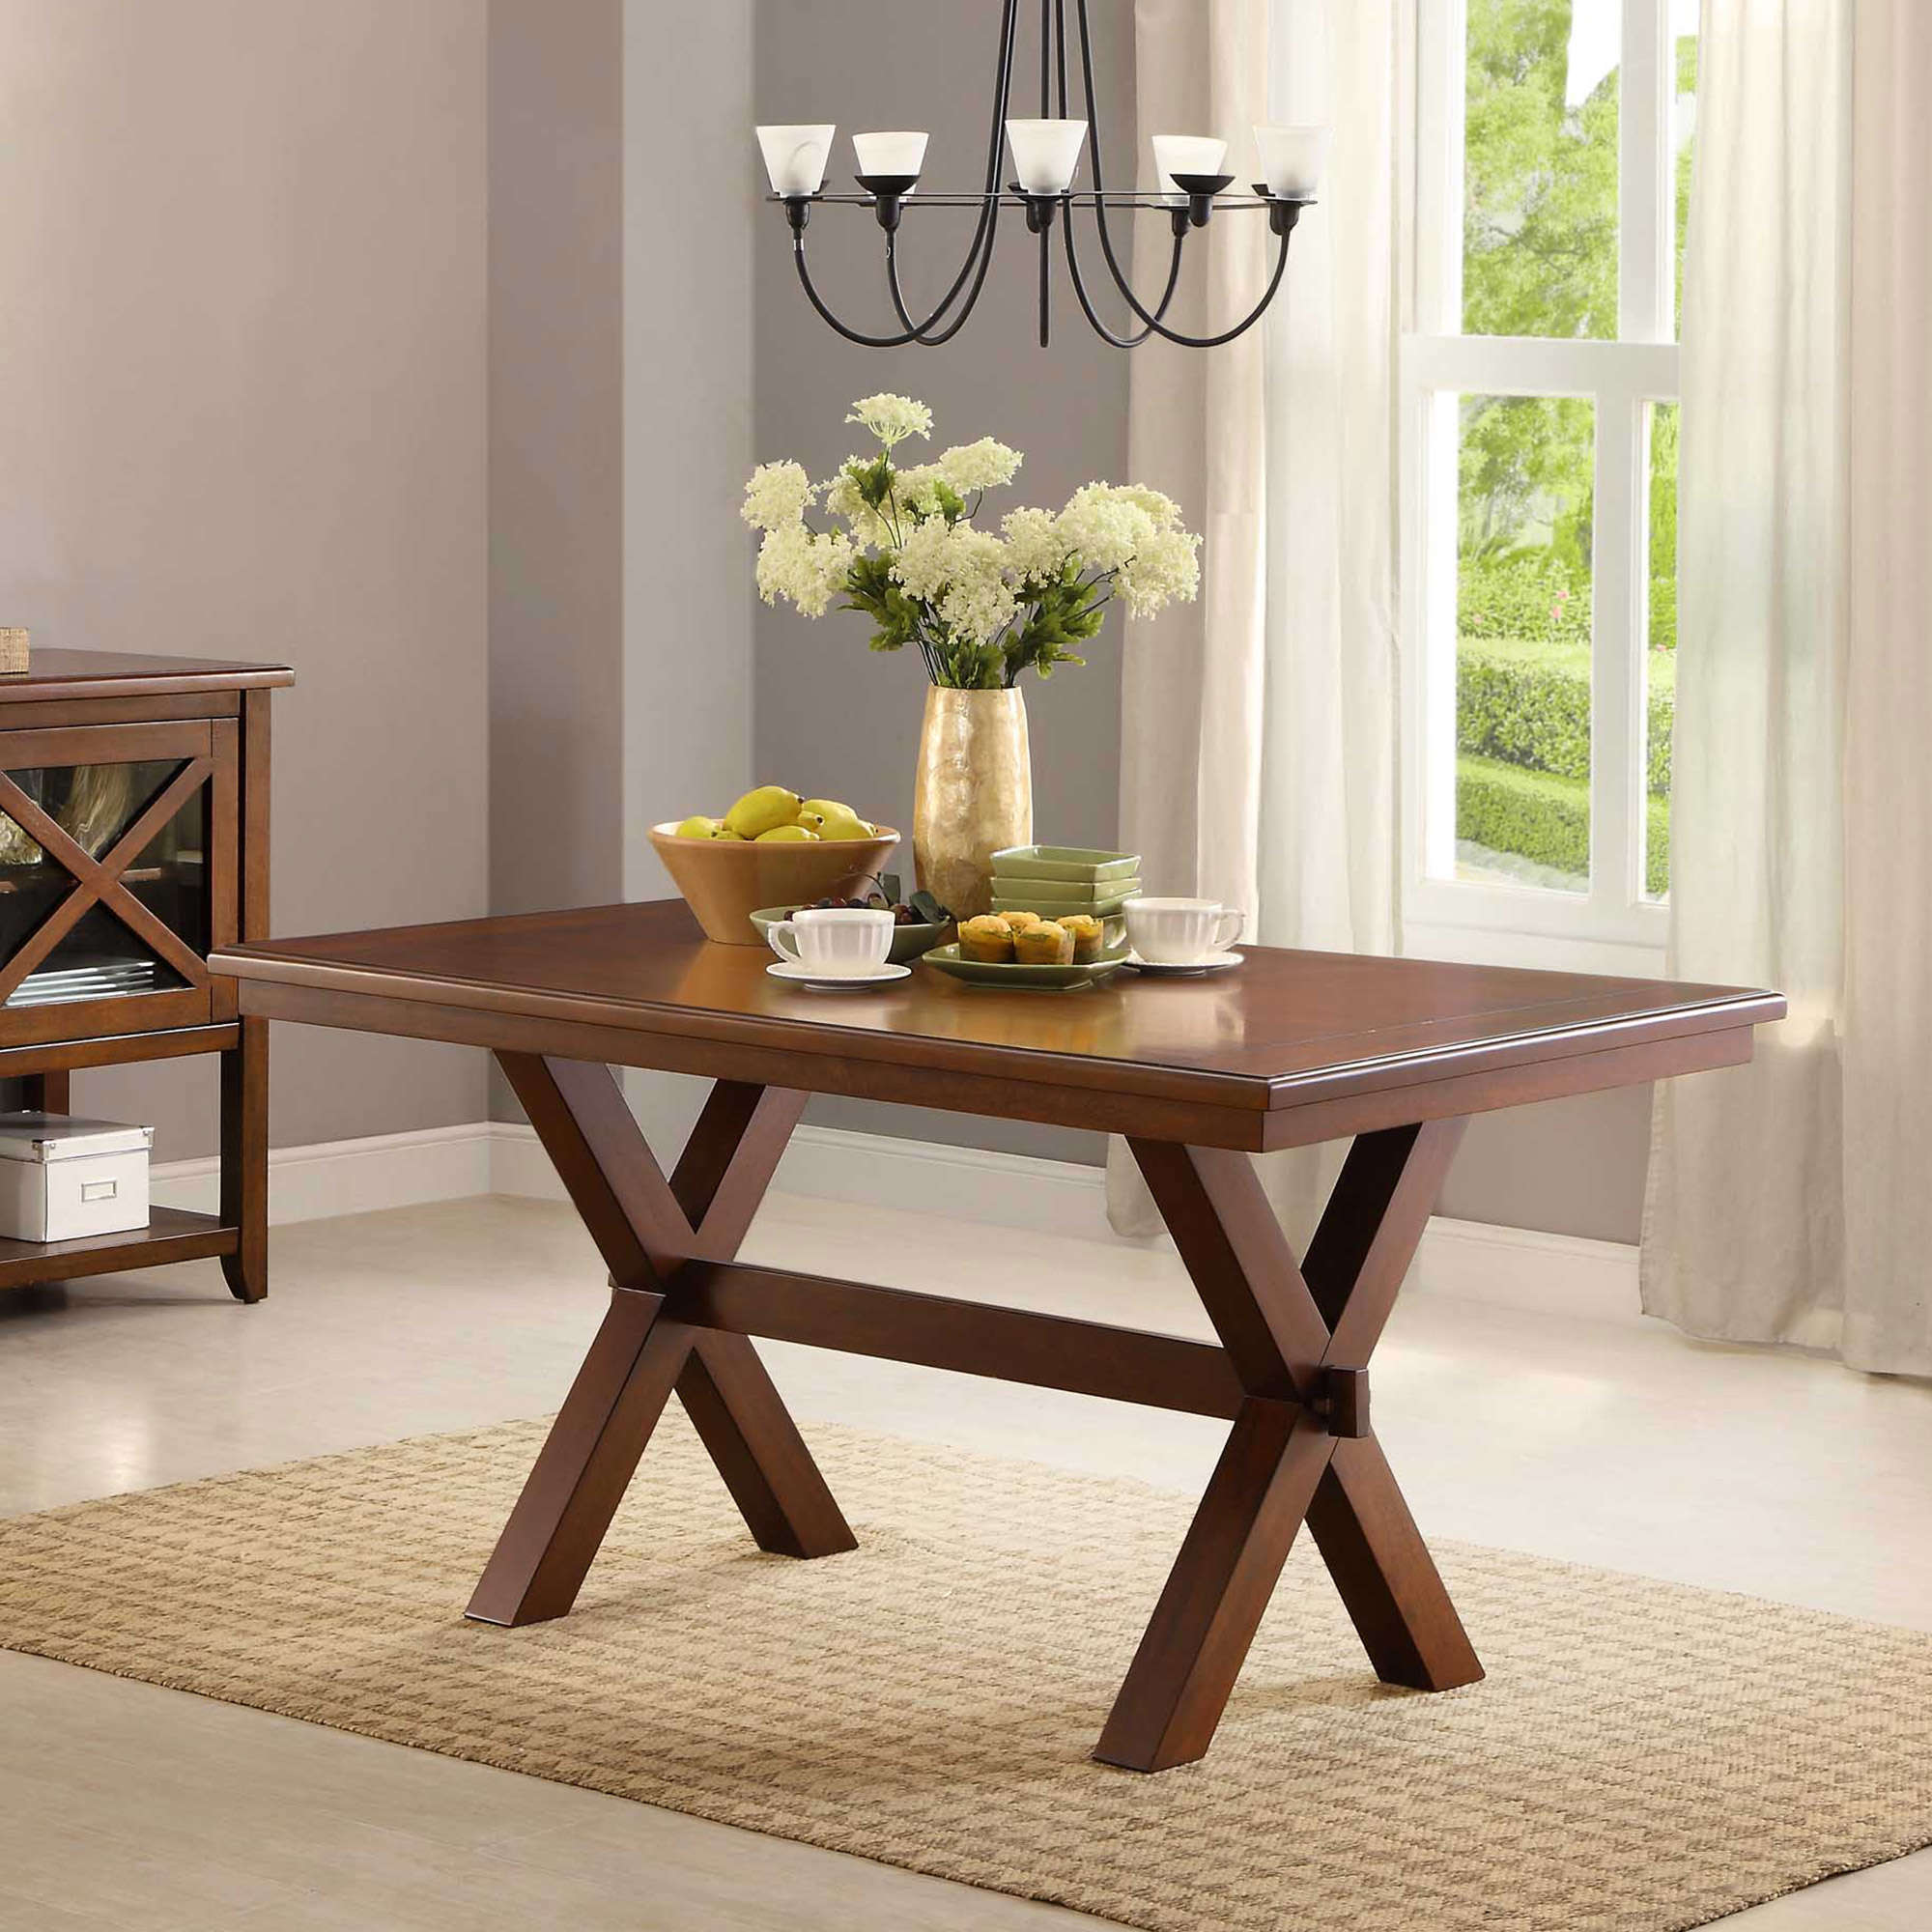 Better Homes and Gardens Maddox Crossing Dining Table, Brown by